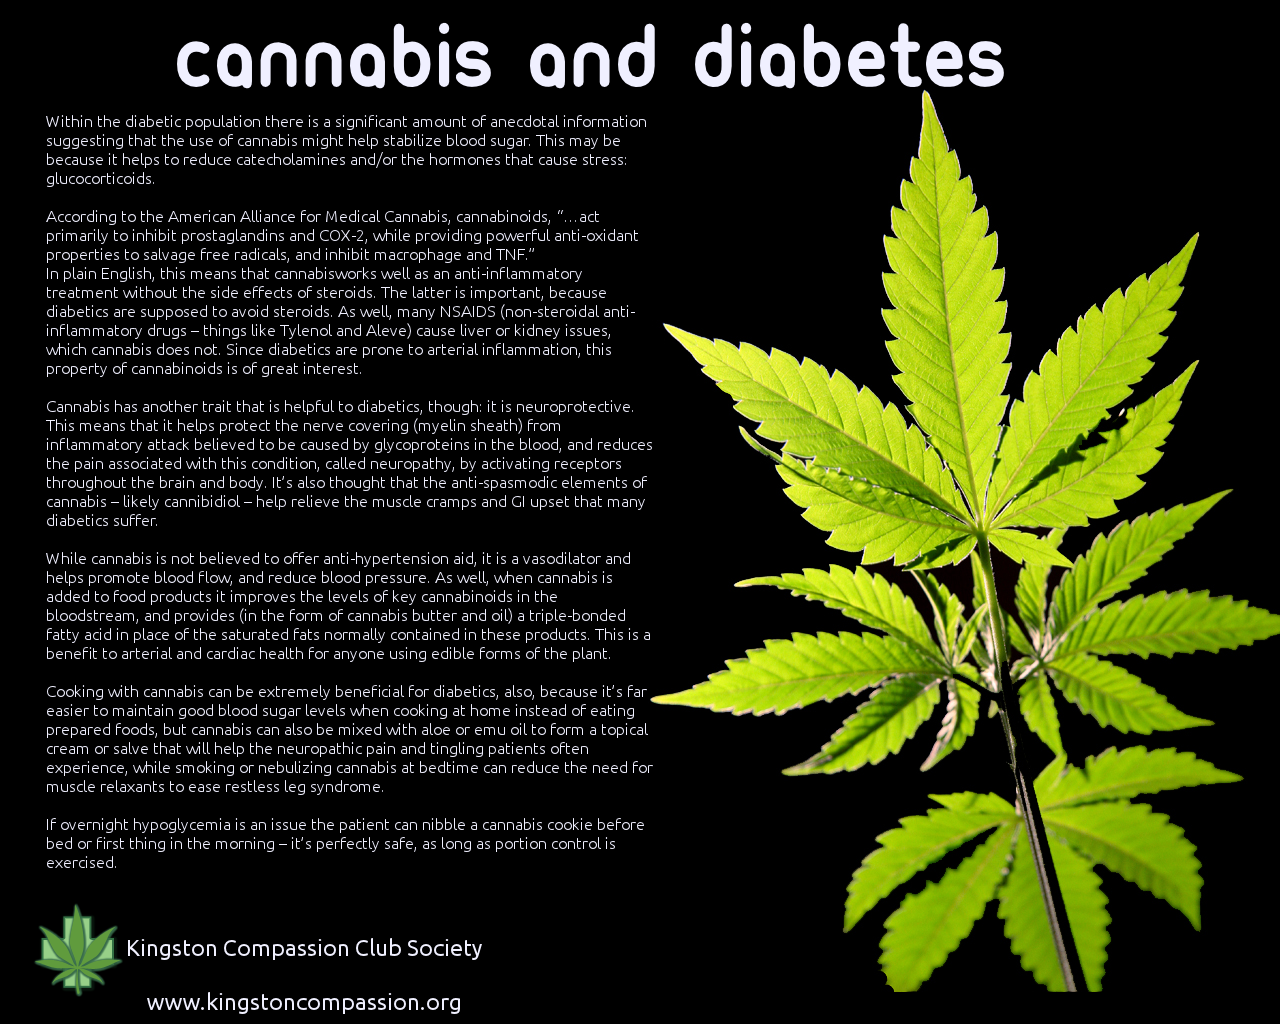 cannabis and diabetes - close to my heart   diabetes new life's